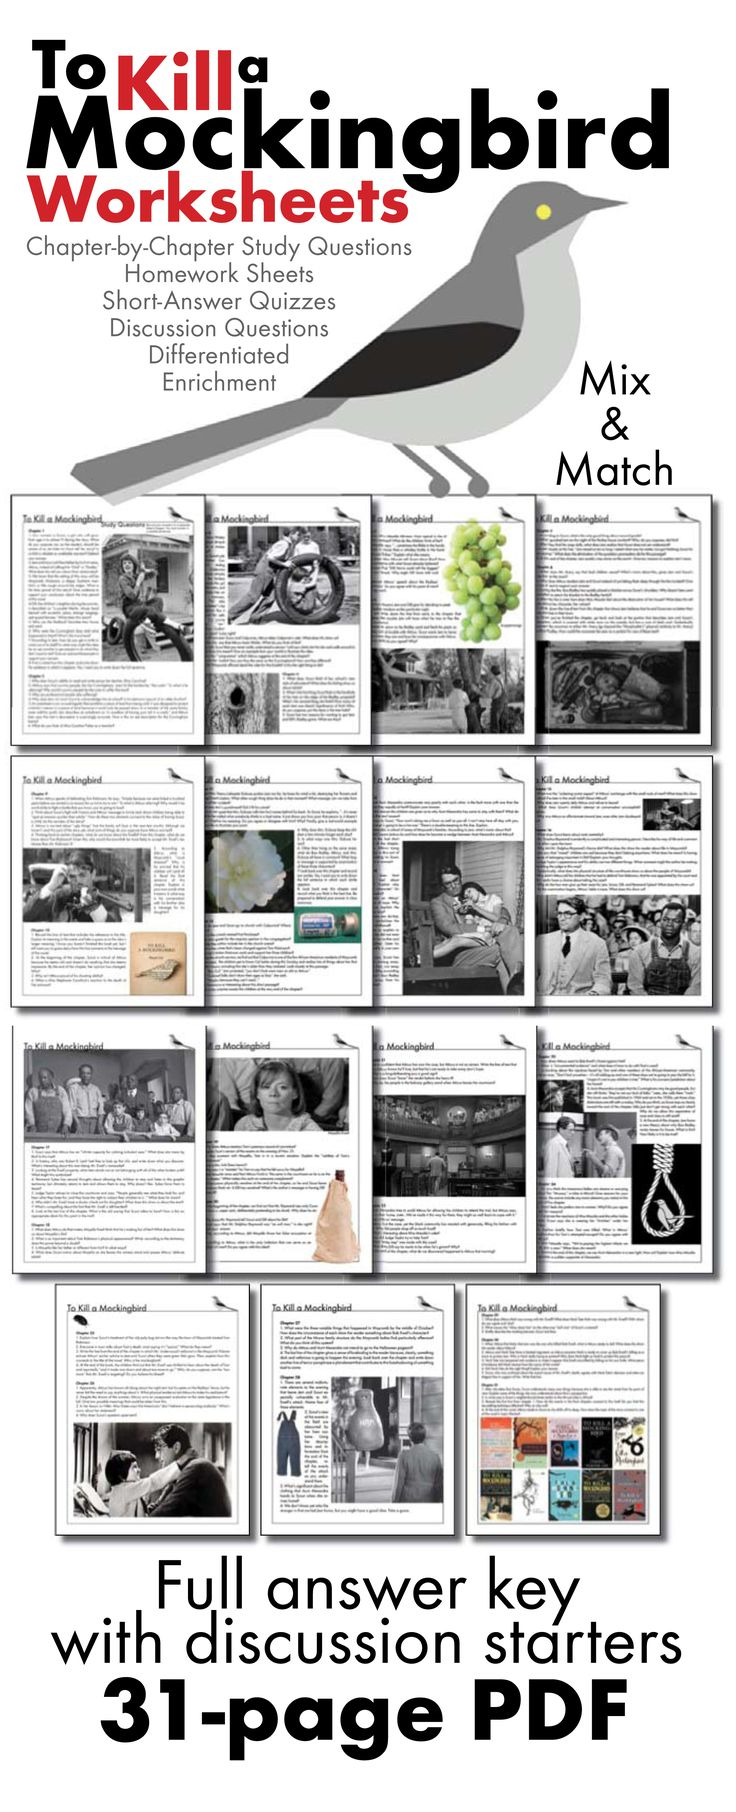 Use this visually stunning package of chapter-by-chapter questions covering Harper Lee's classic American novel, To Kill a Mockingbird, to pull your students into the text and inspire them to think deeply about Lee's themes.